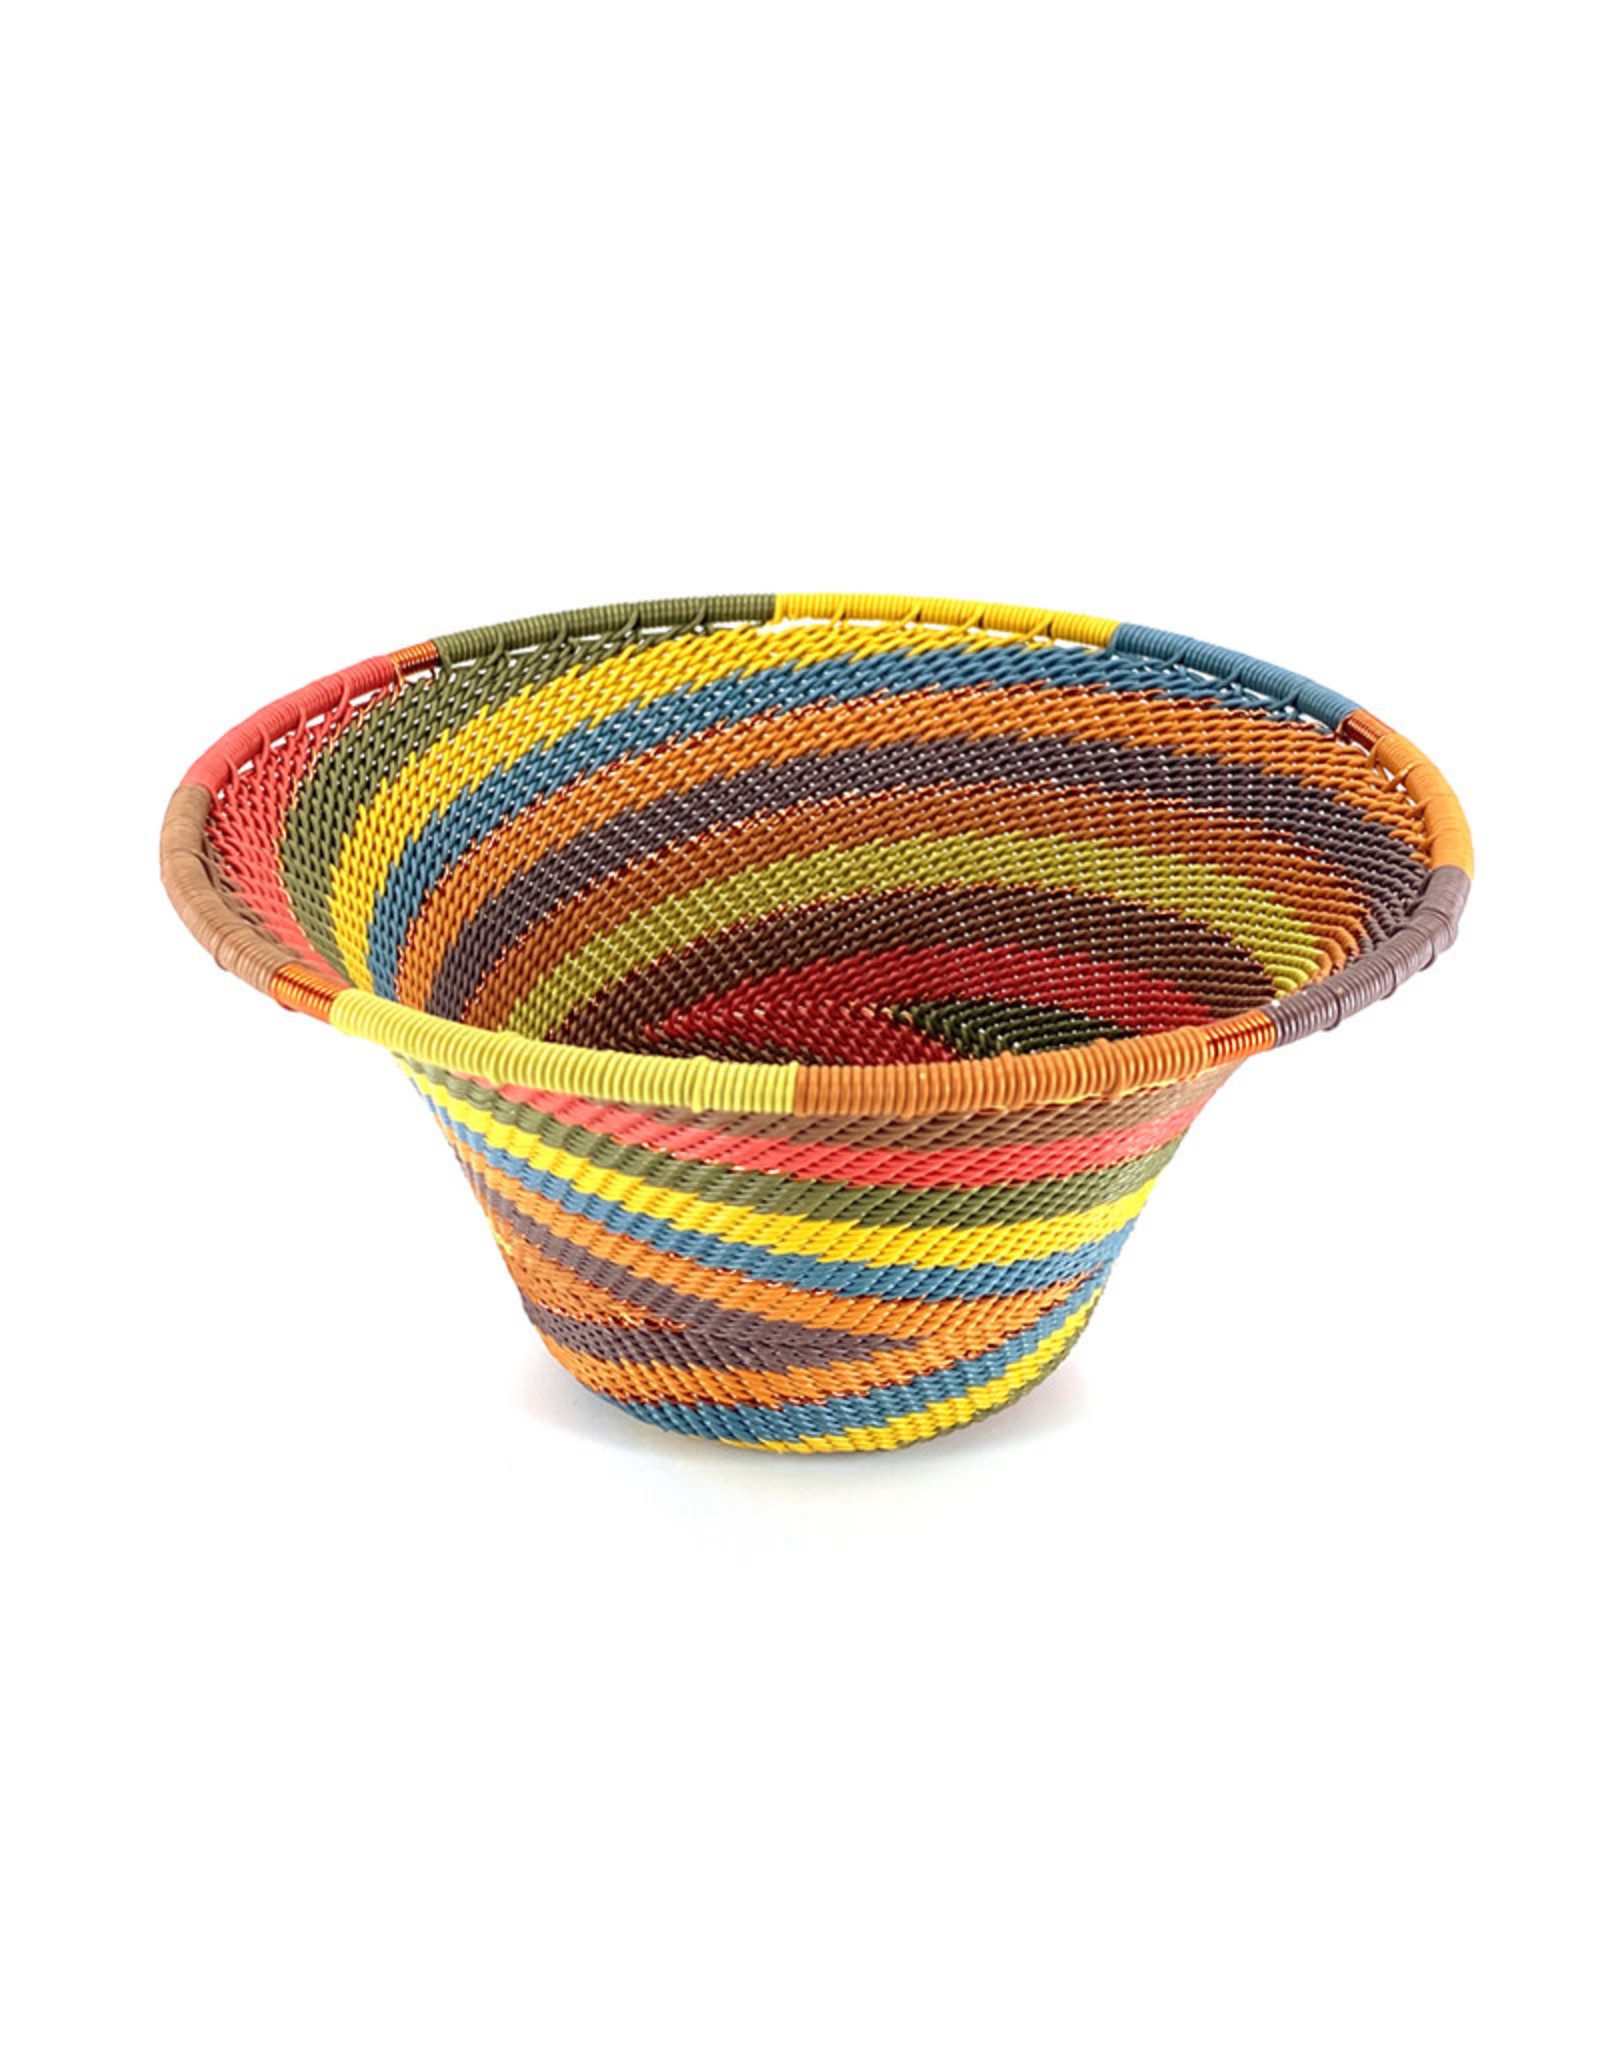 BASKETS OF AFRICA SMALL EARTH RAINBOW FUNNEL BASKET